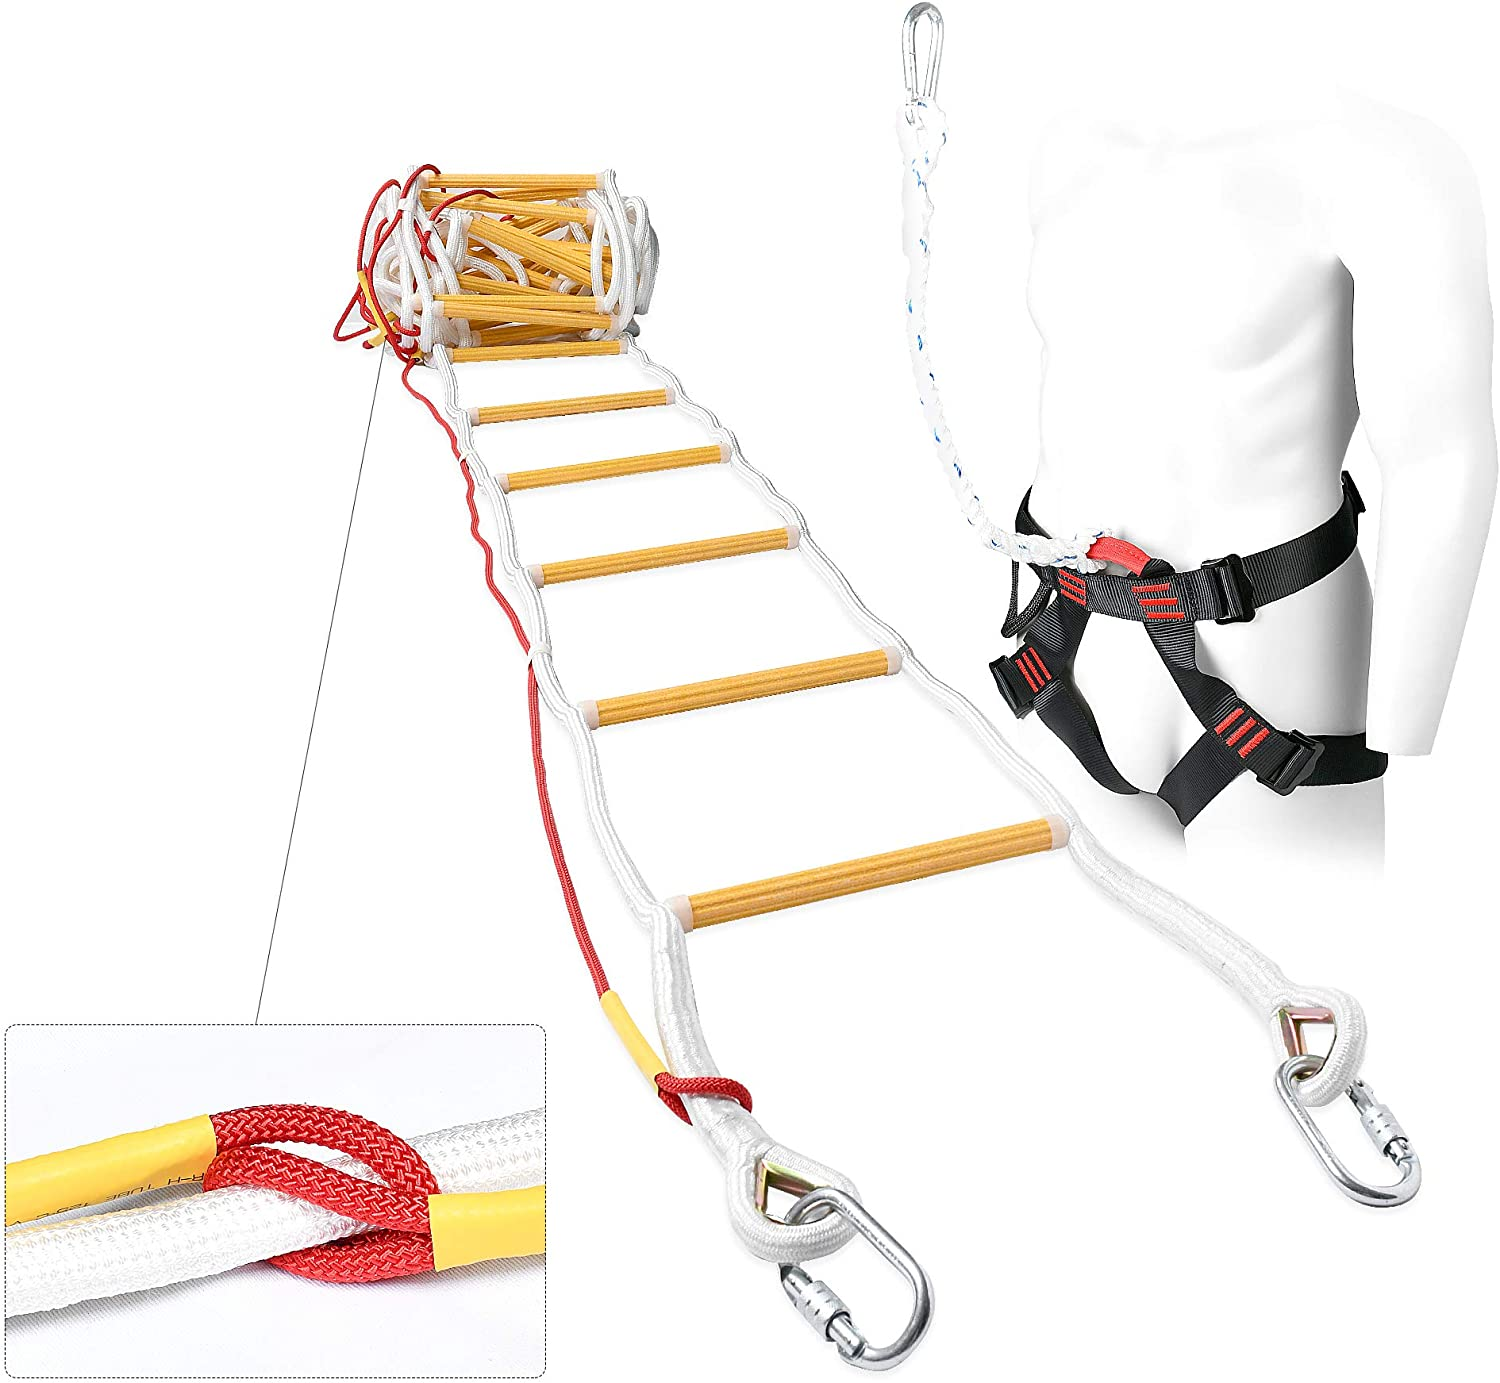 Fire Escape Rope Ladder for Balcony 3 Story - Safety Ladders with Carabiners & Harness Belt 10m (32ft)